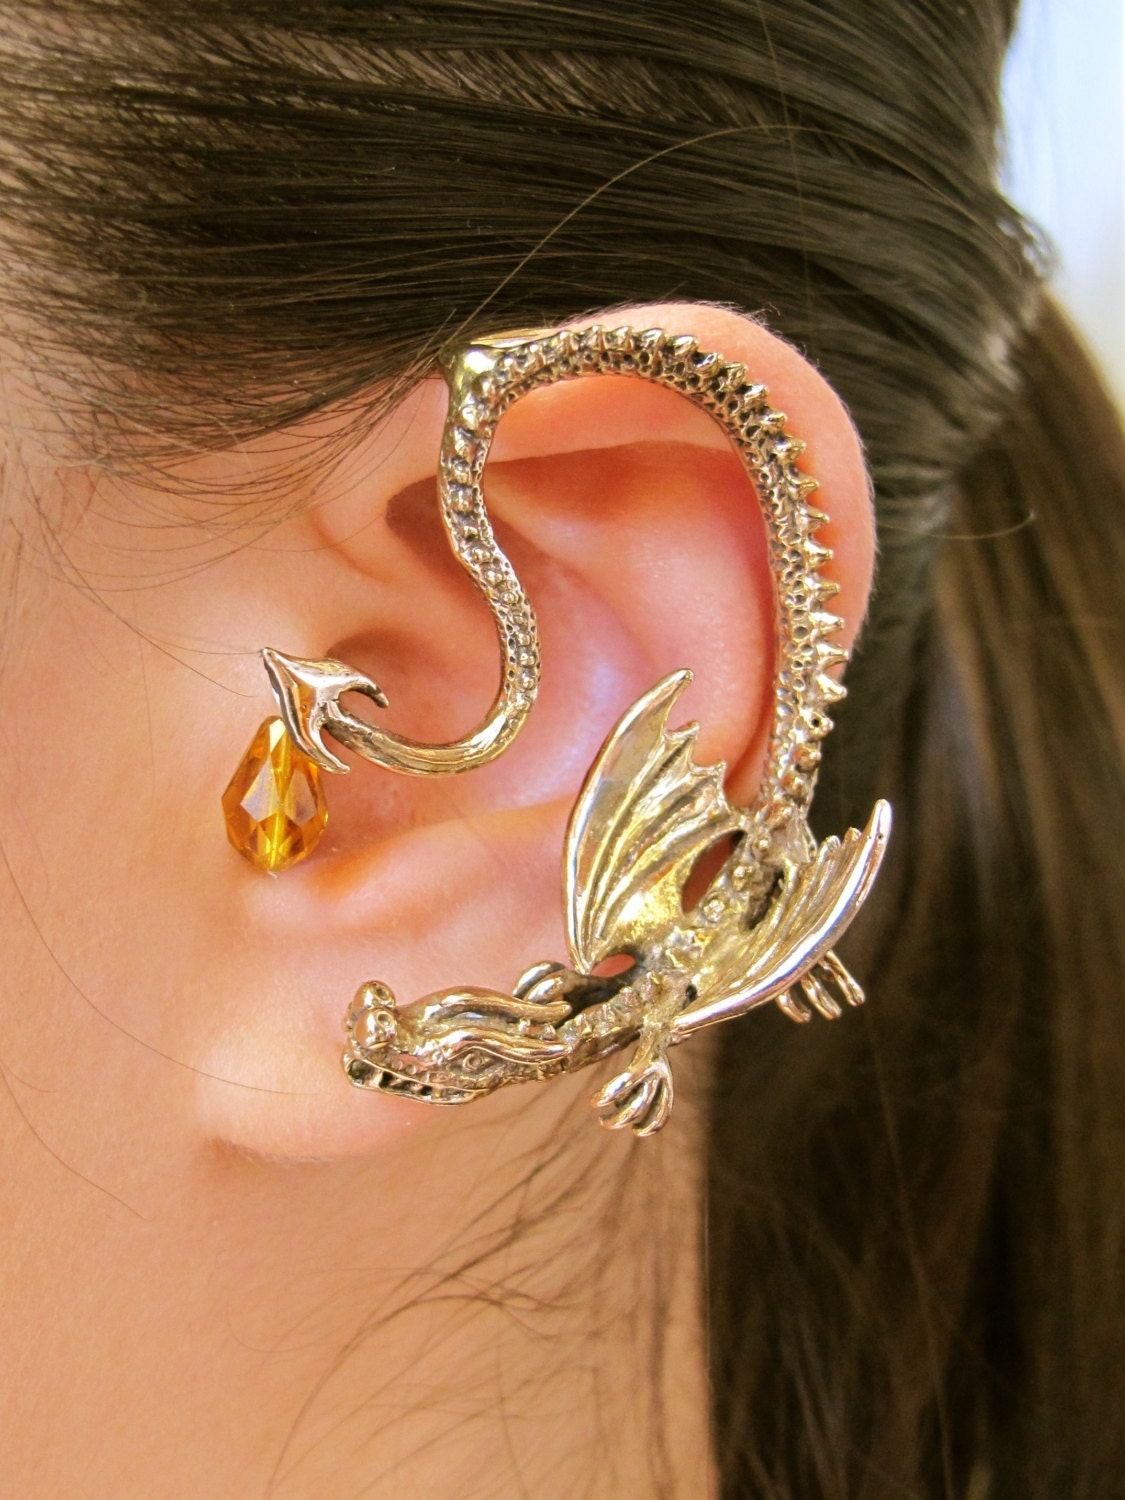 301 moved permanently - Game of thrones dragon ear cuff ...